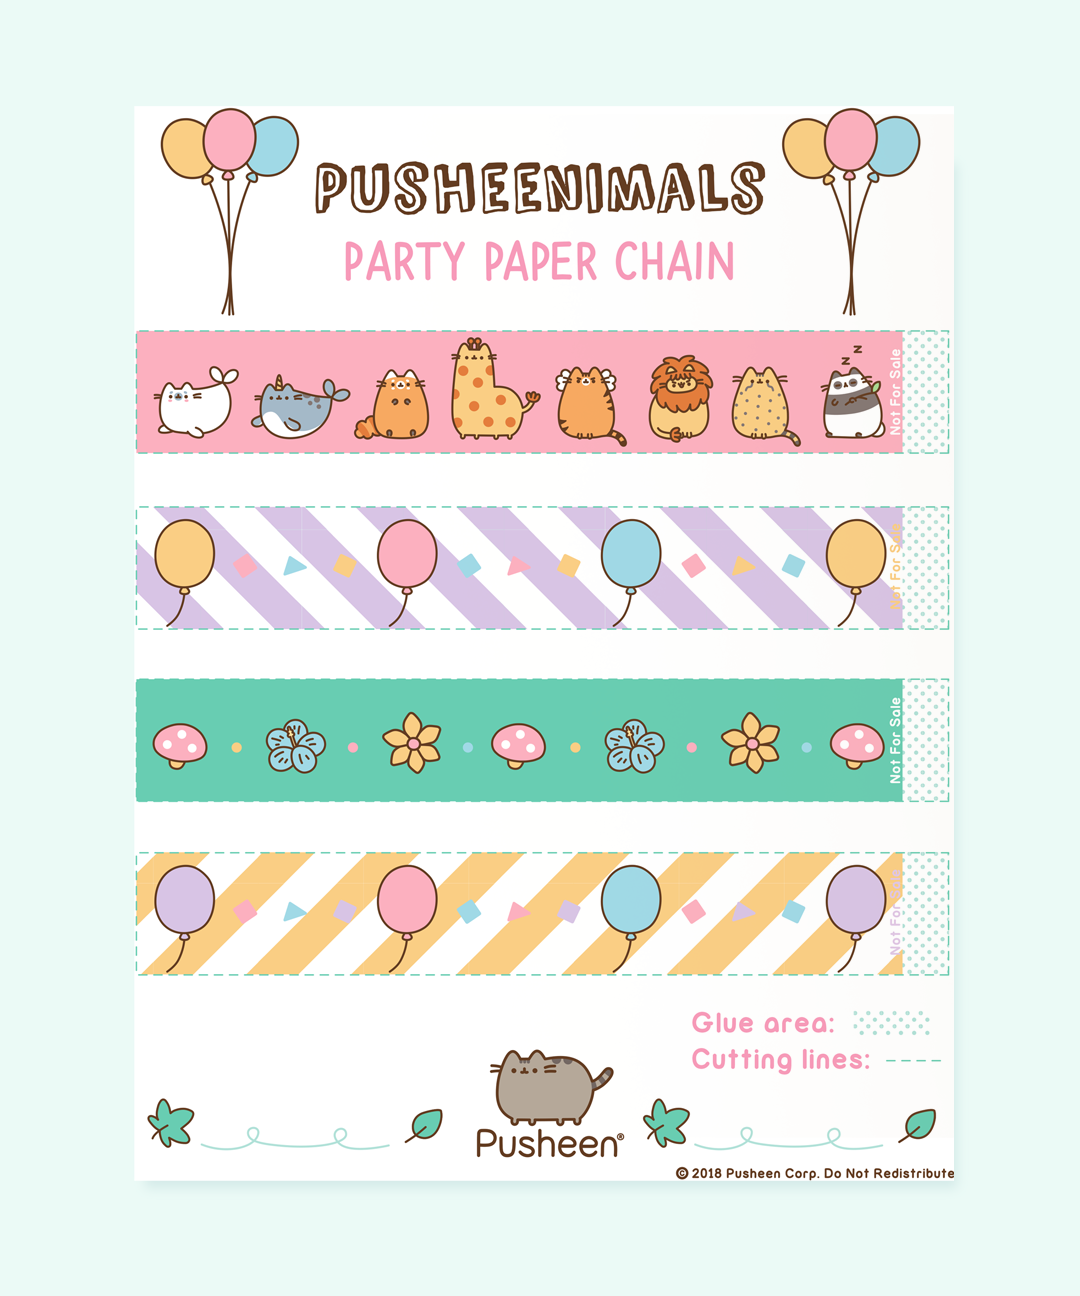 Pusheenimals Printable Paper Chain